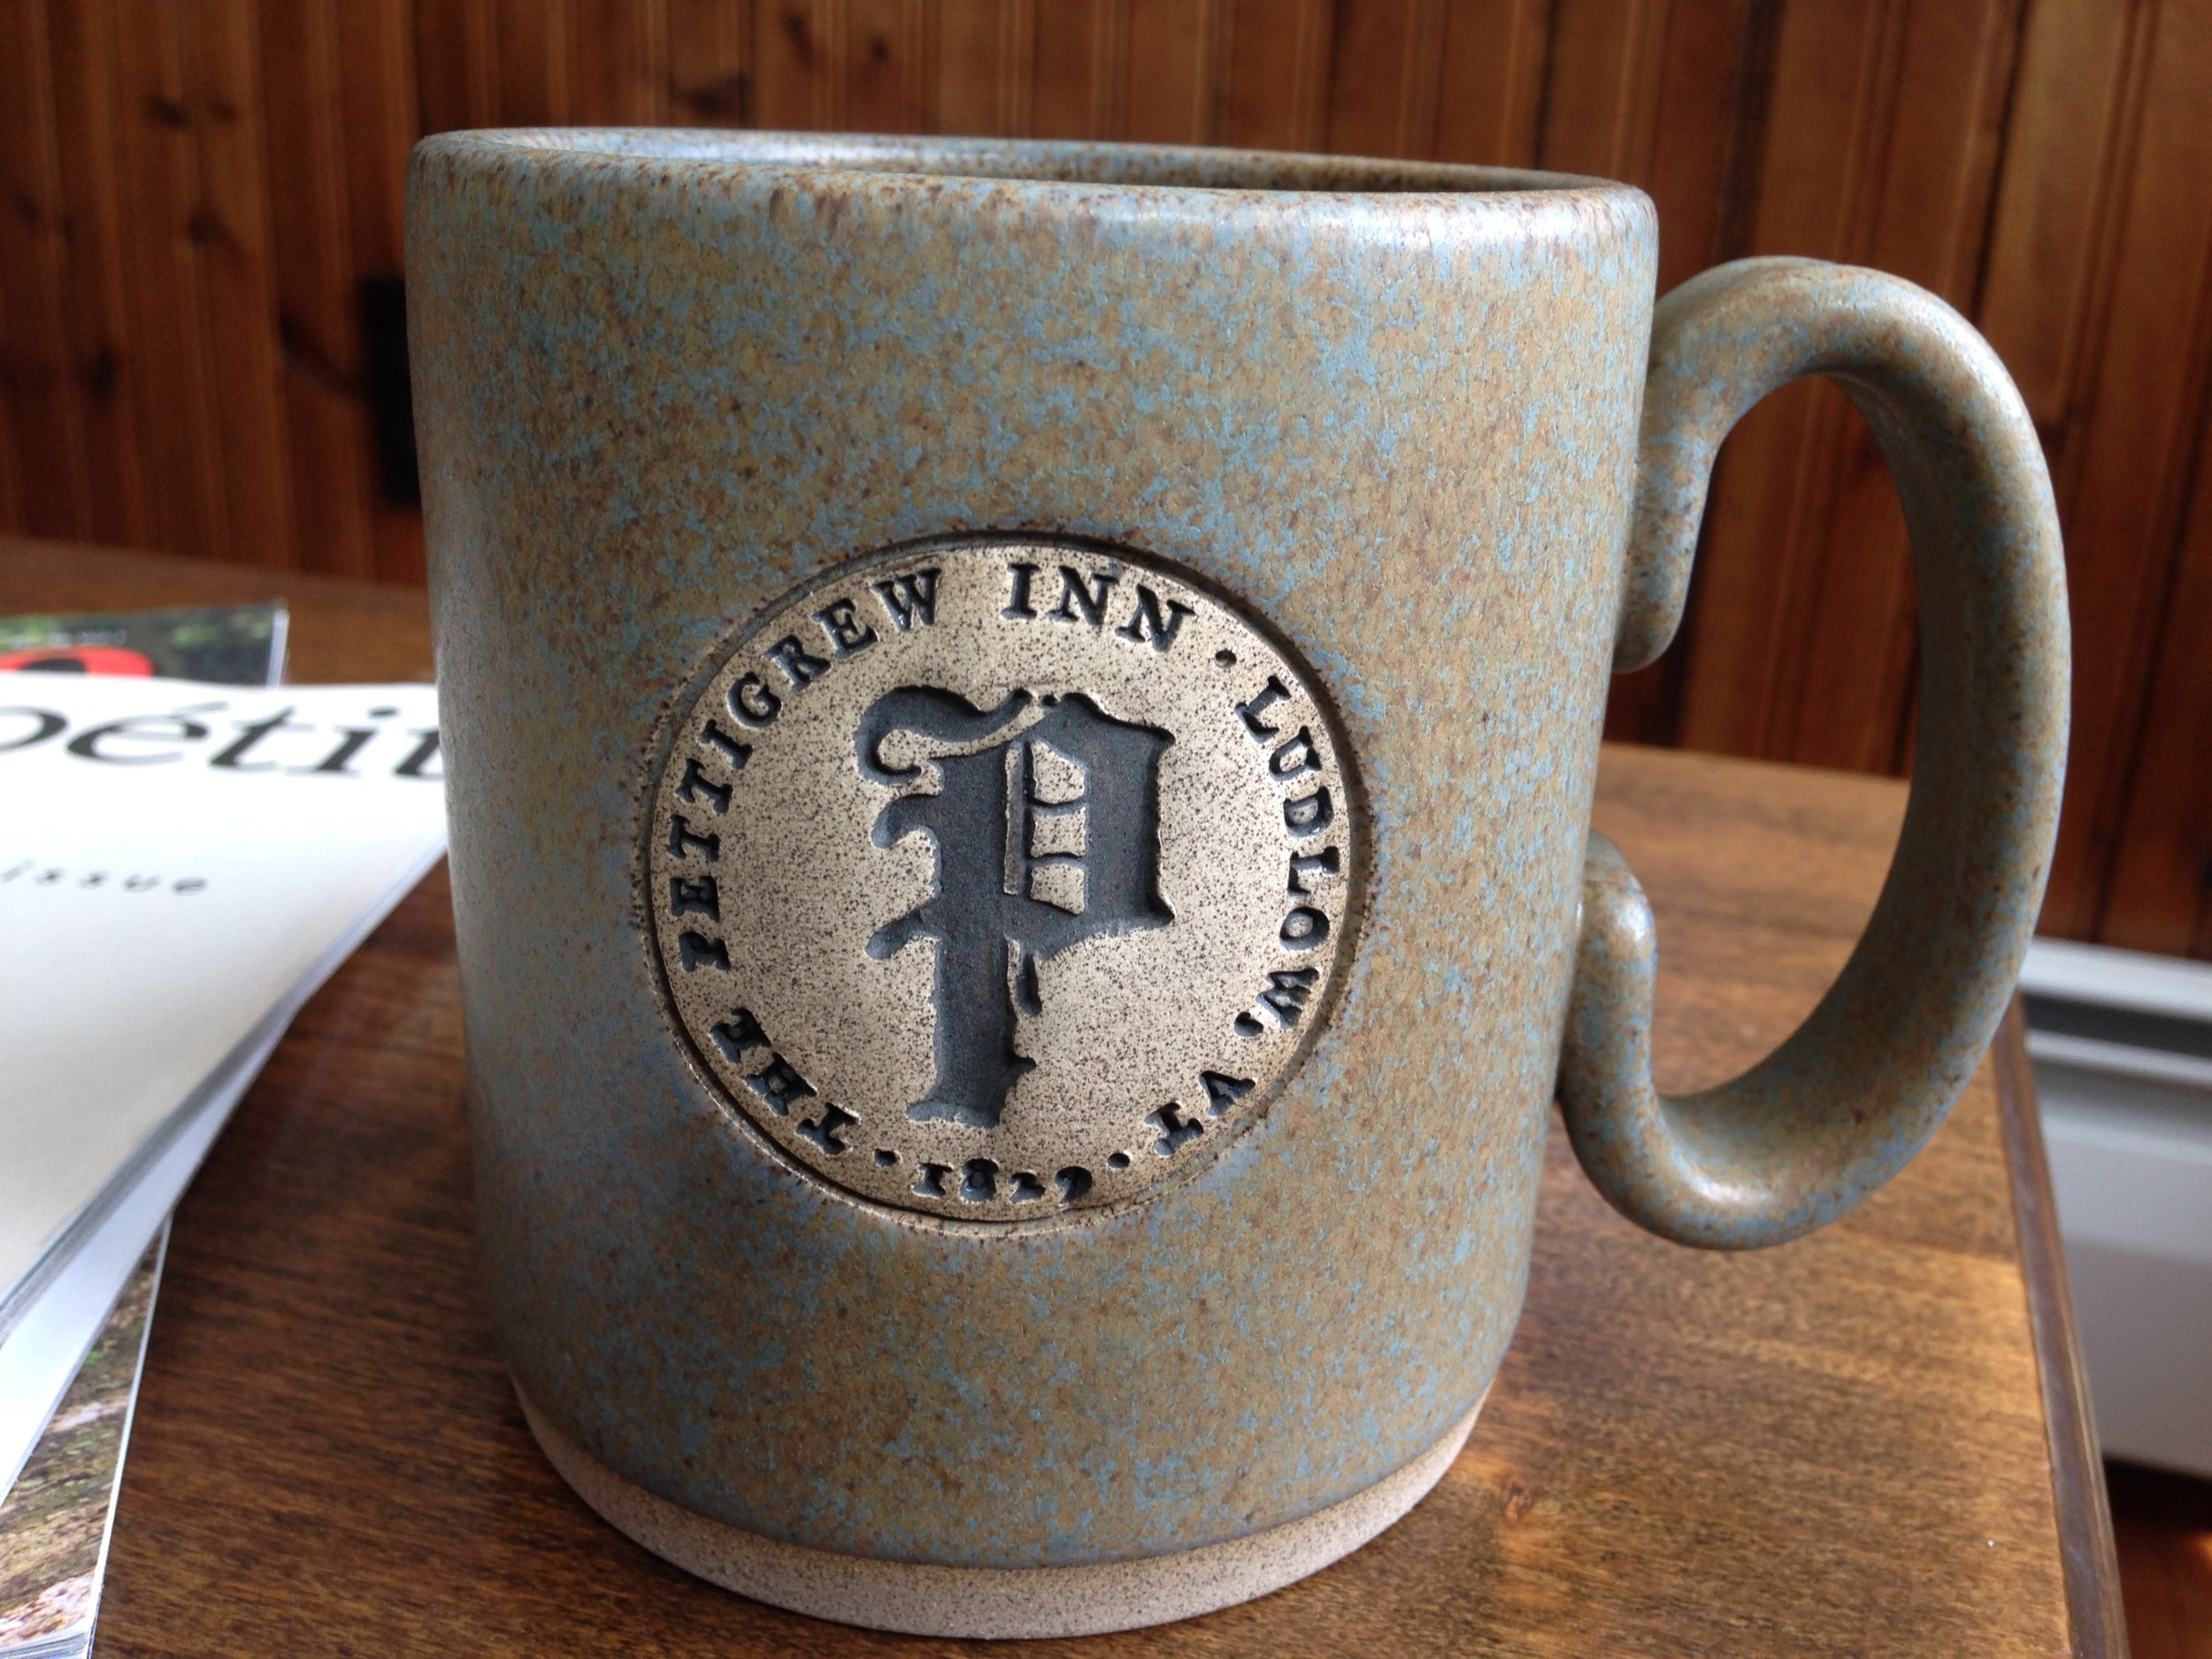 The Pettigrew Inn is proud to support local Vermonters by serving Vermont Artisan Coffee & Tea Company beverages every morning in hand-thrown mugs from Pizzazz Pottery